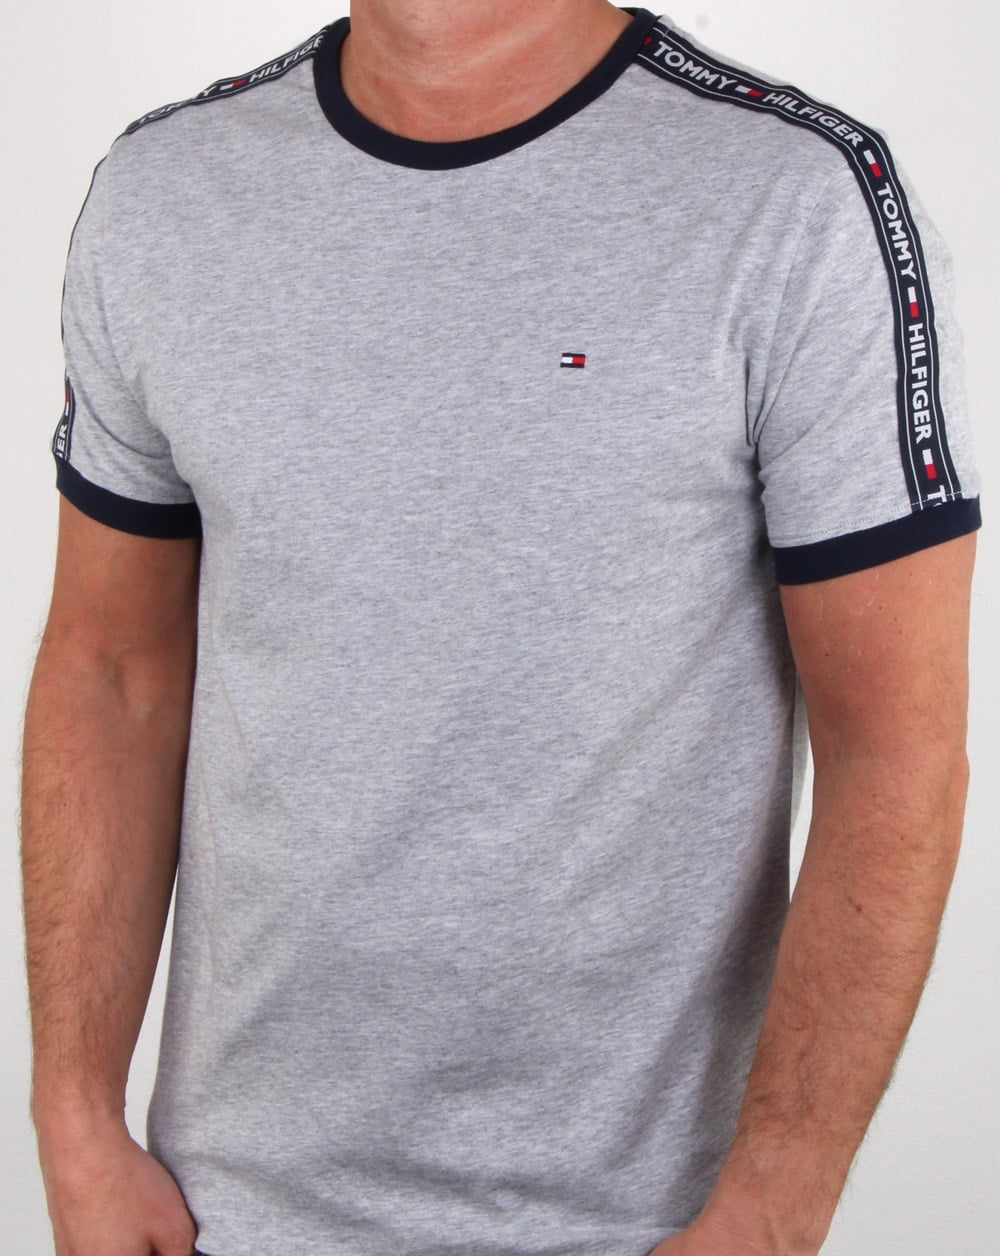 premium selection e70b2 9cb20 Tommy Hilfiger Taping T Shirt Grey